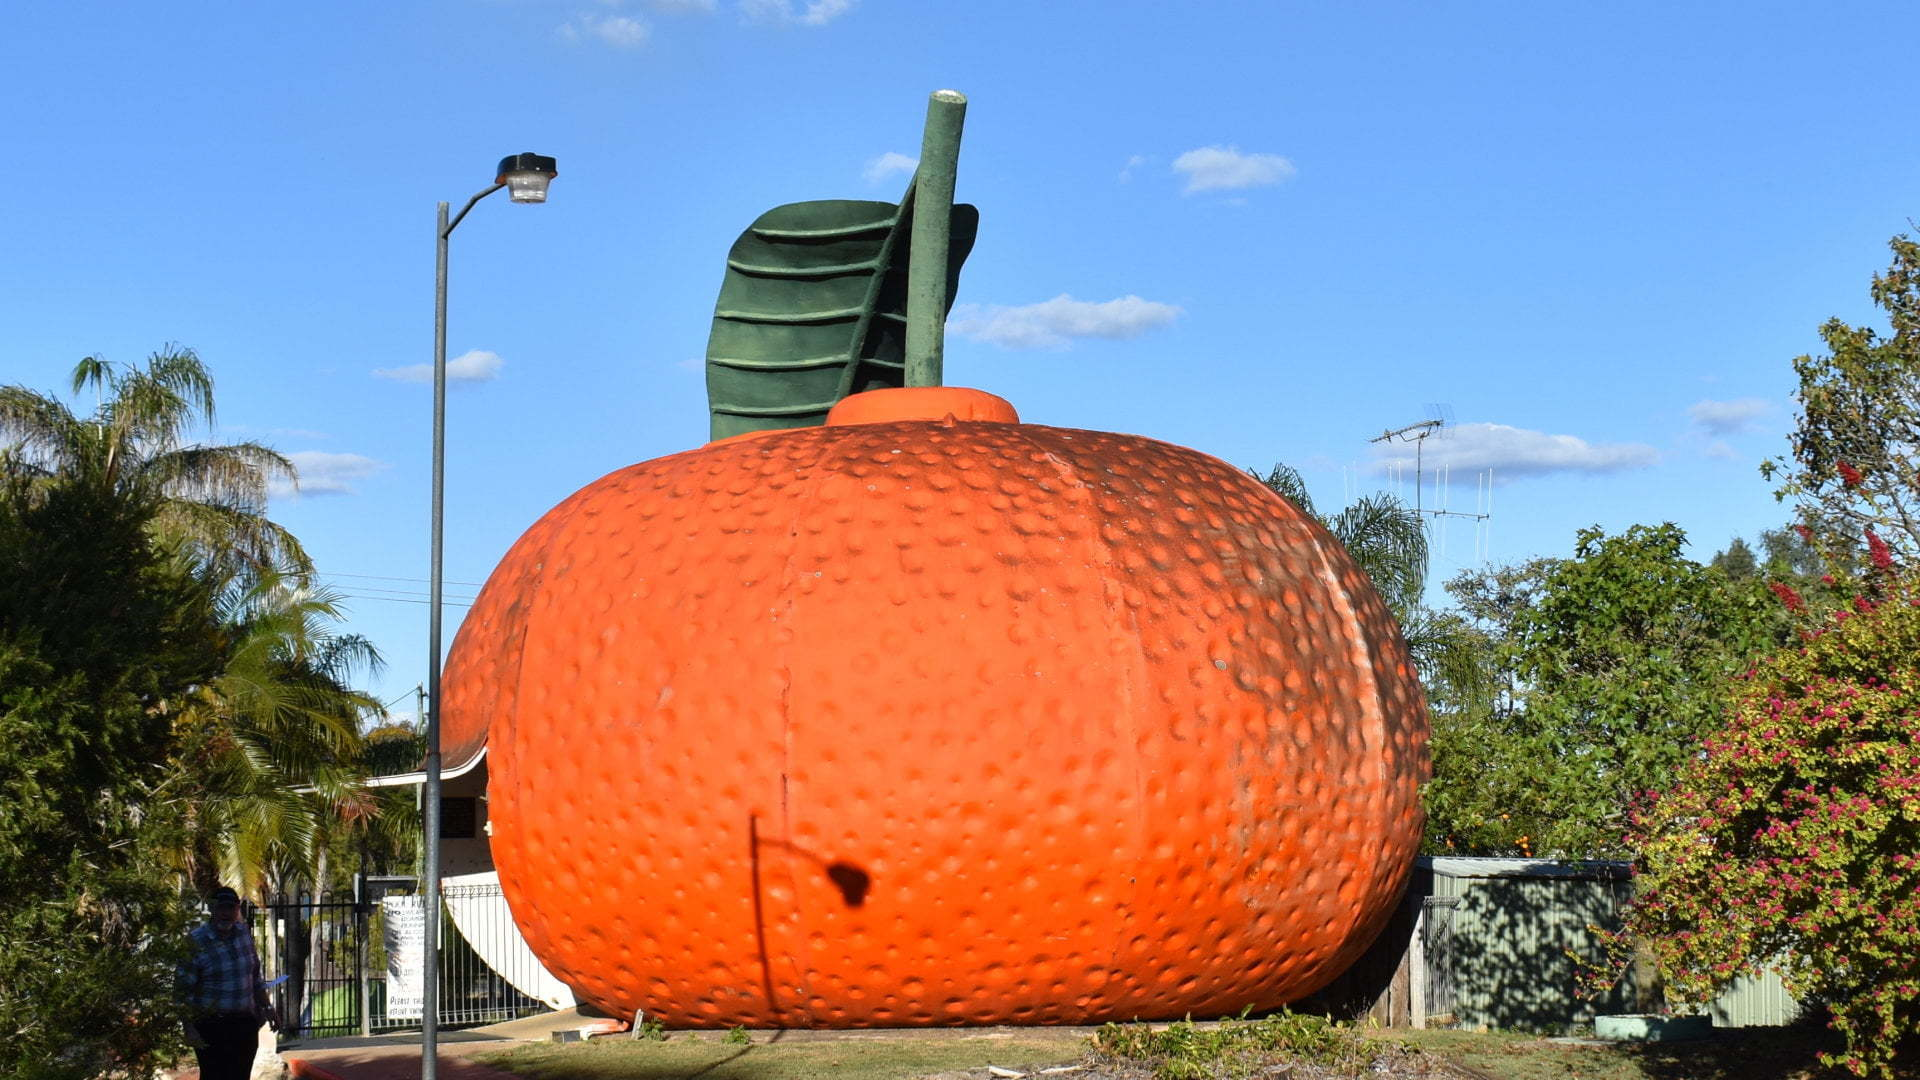 """Big Mandarin building, one of the """"big thing"""" attractions across Australia"""